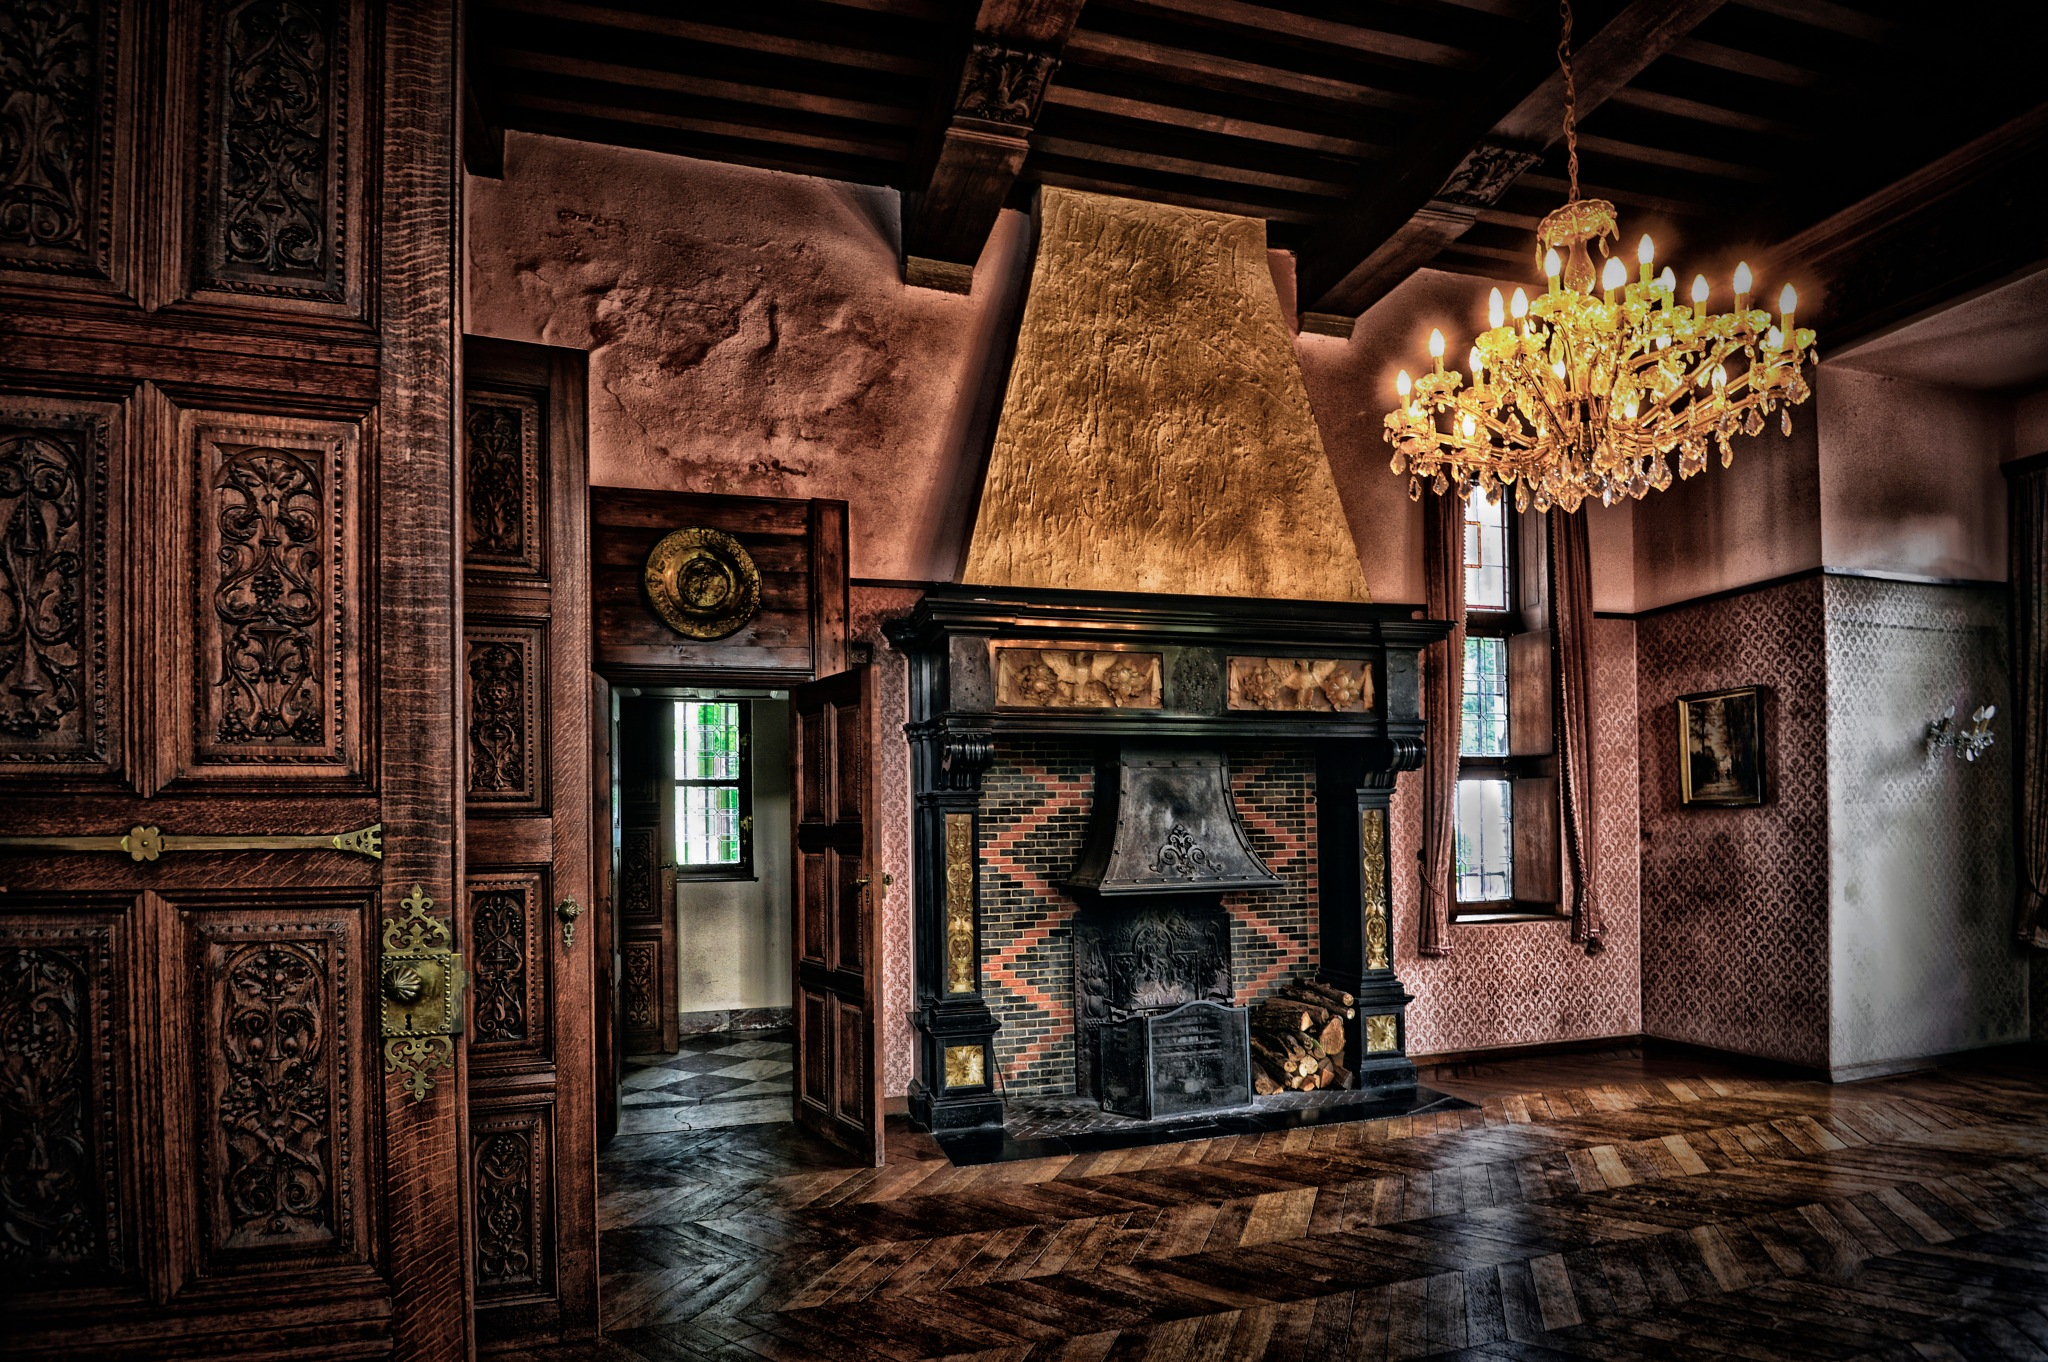 Reception room by ghislain vancampenhoudt